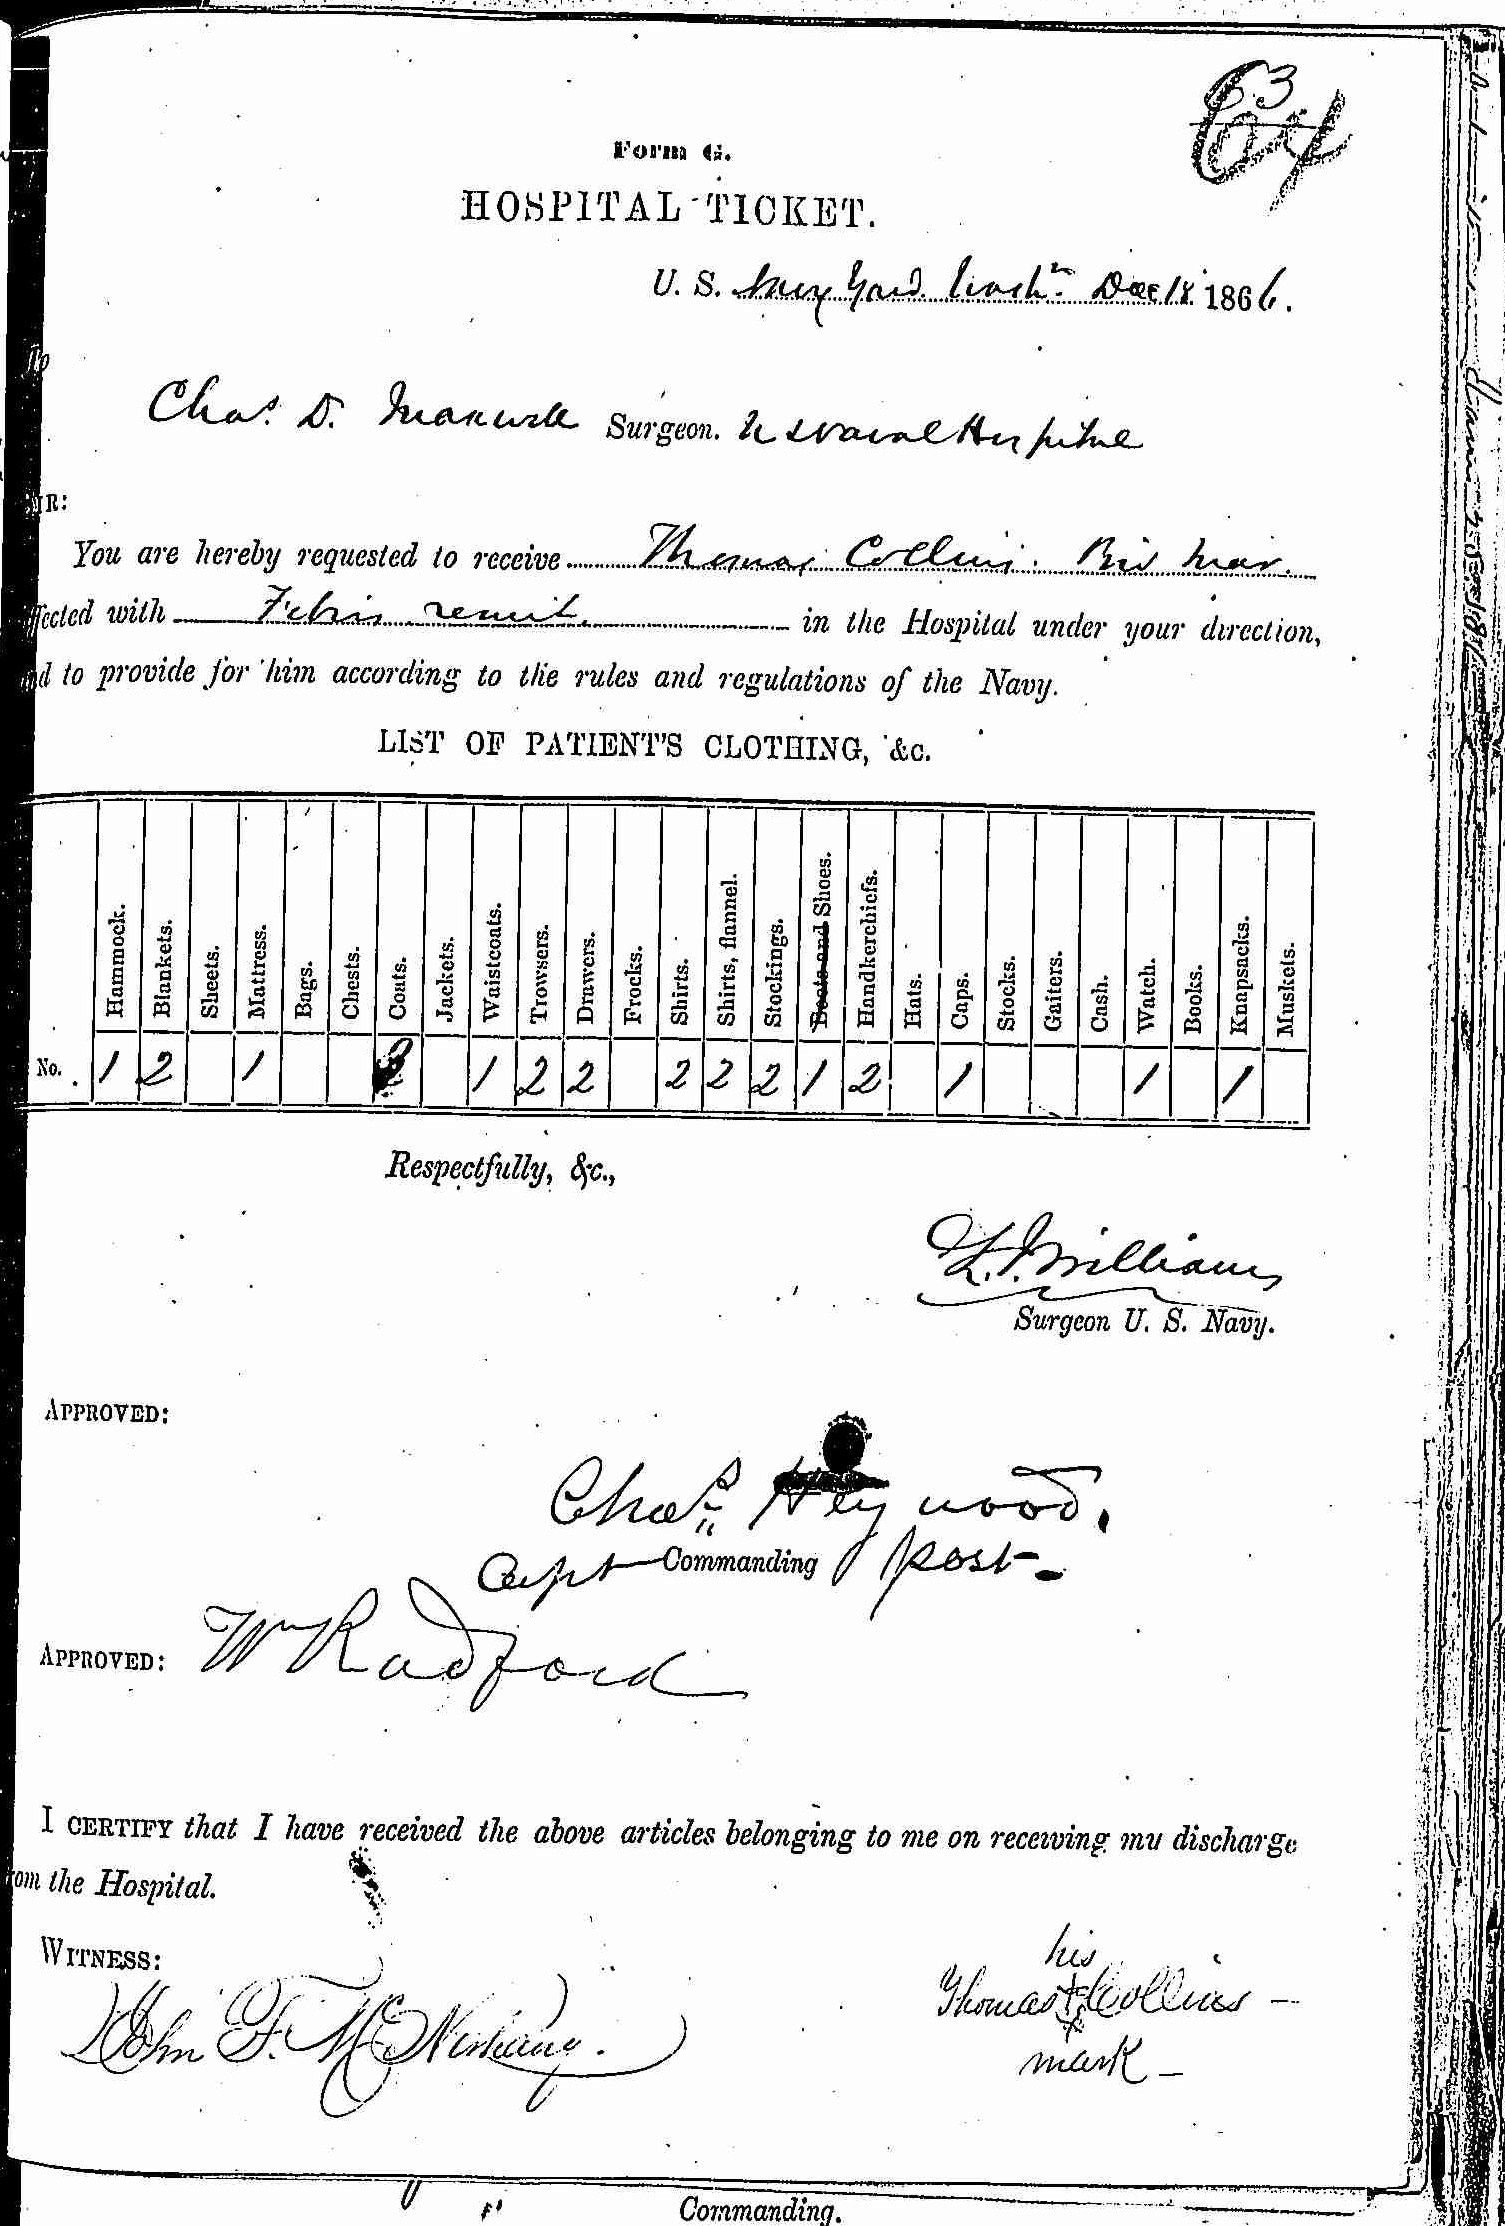 Entry for Thomas Collins (first admission page 1 of 2) in the log Hospital Tickets and Case Papers - Naval Hospital - Washington, D.C. - 1865-68